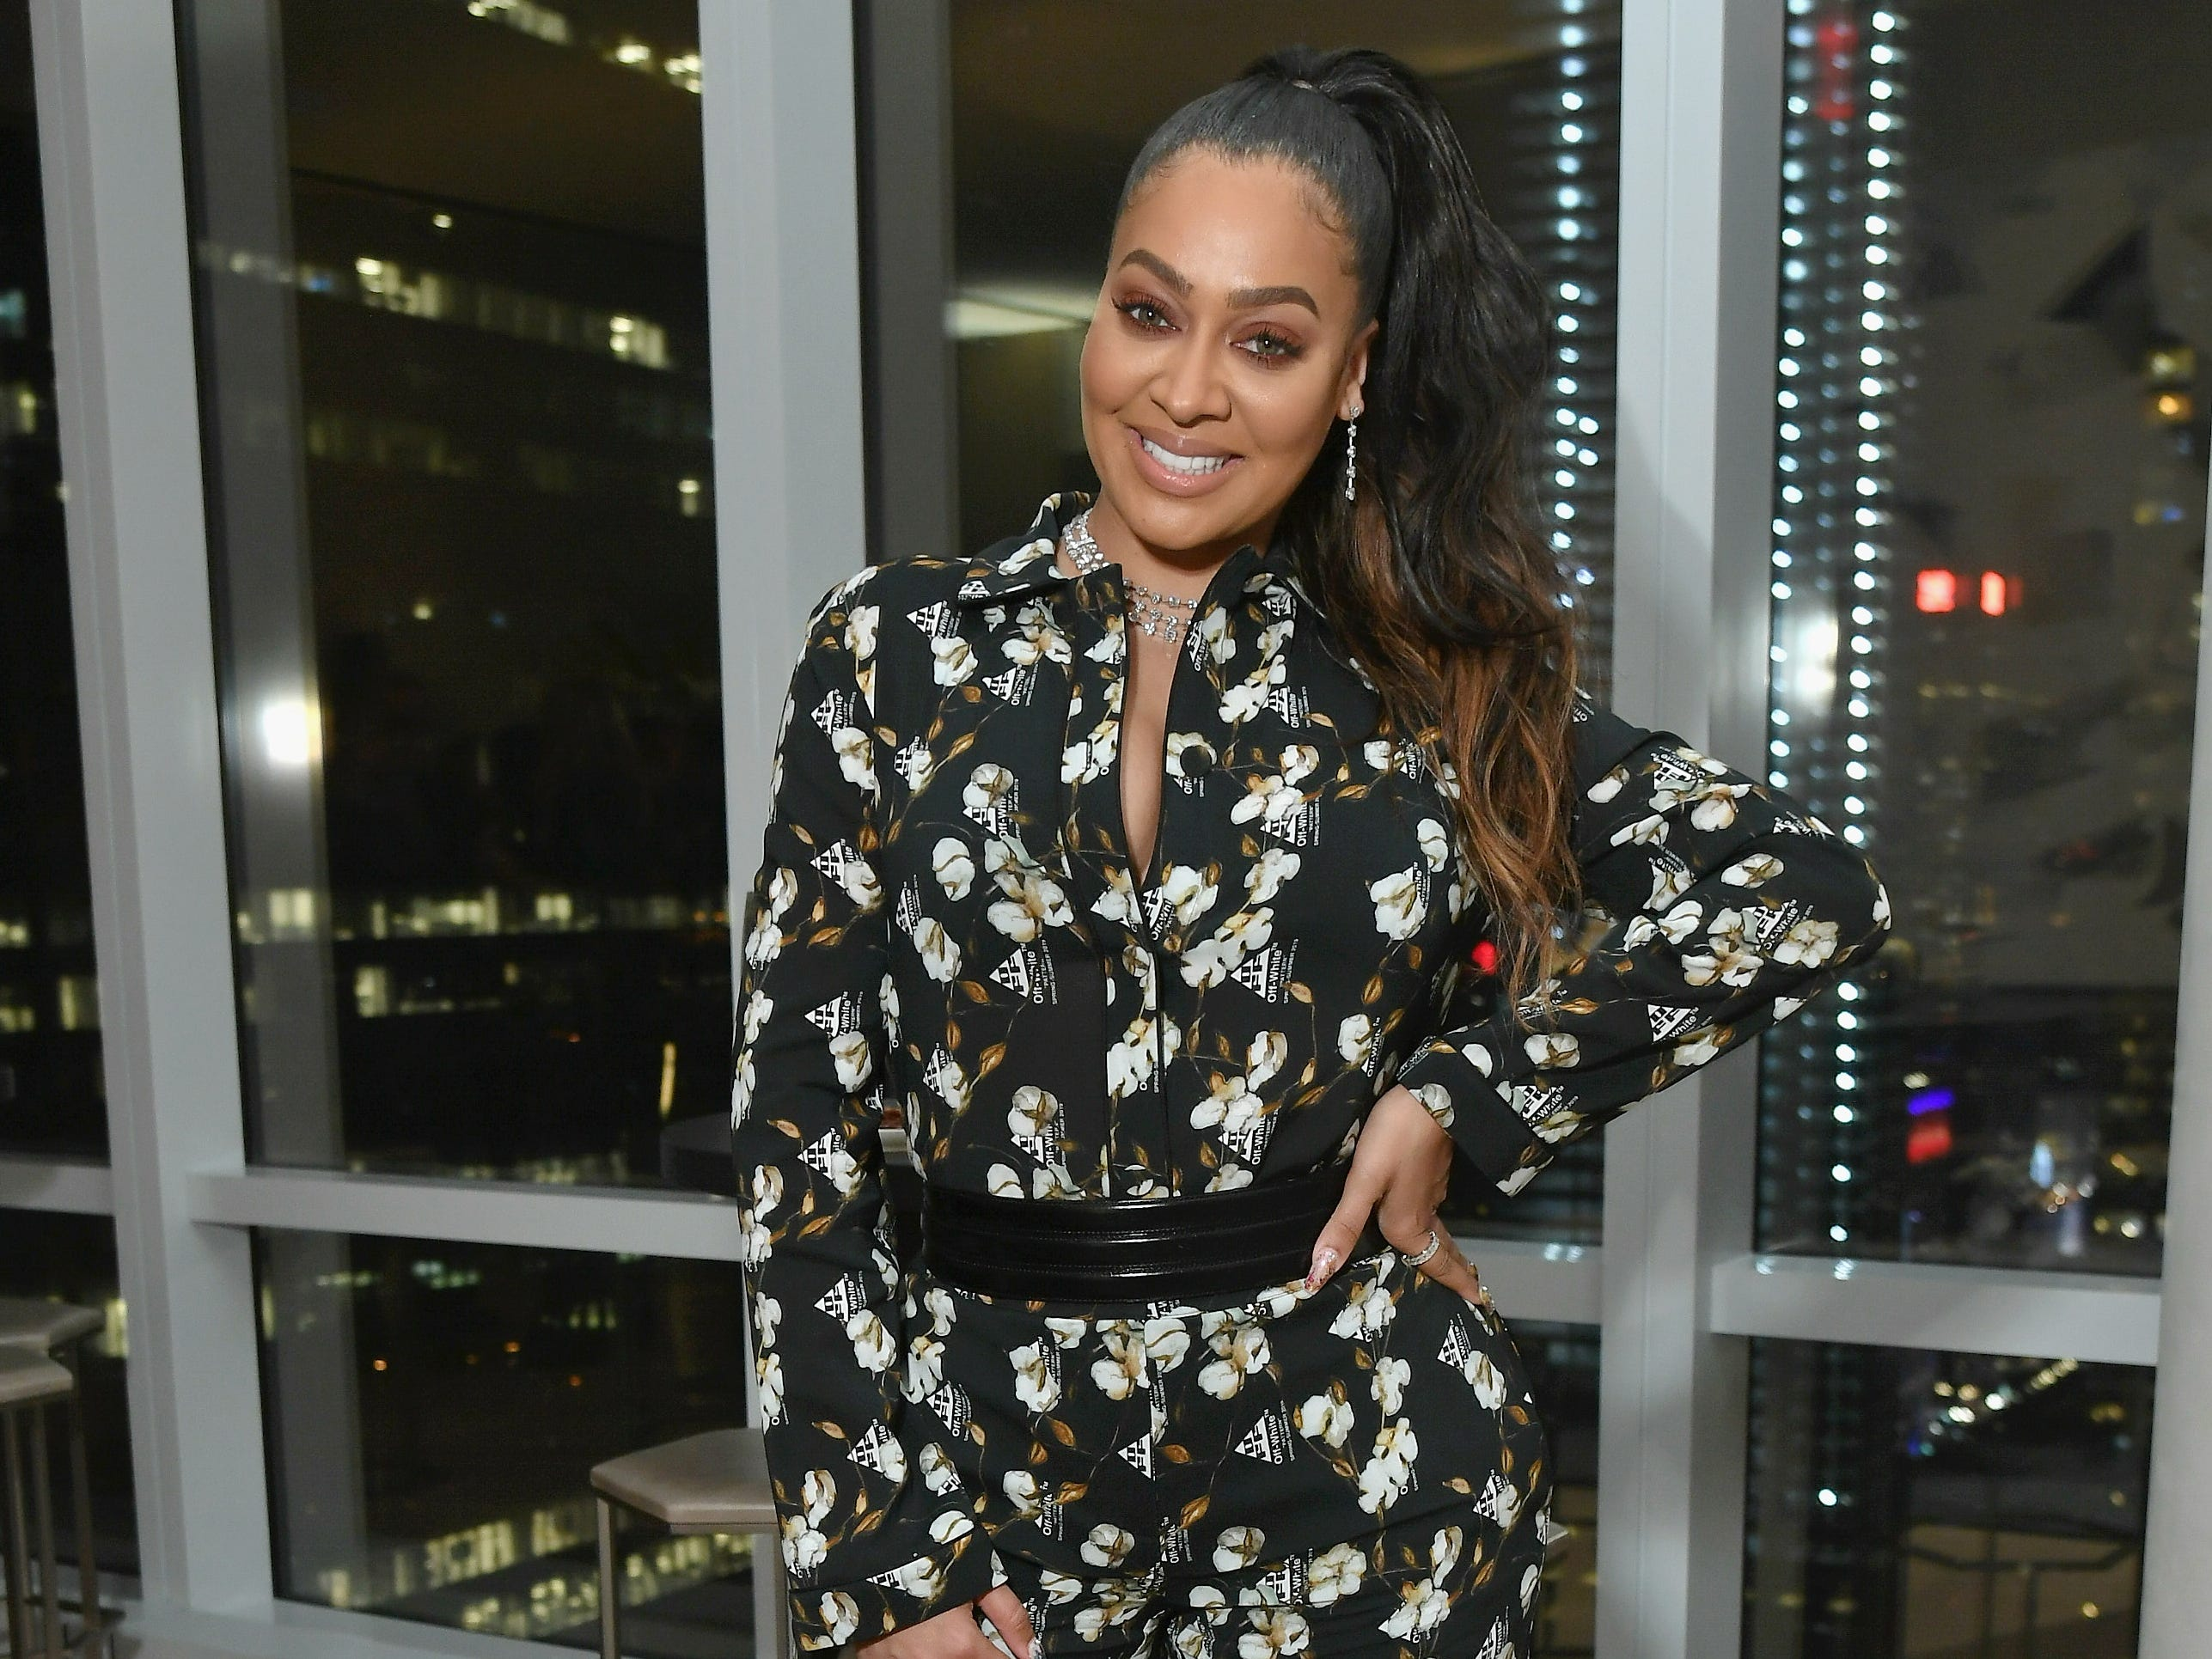 NEW YORK, NY - MARCH 13:  LaLa Anthony attends the InStyle Dinner to Celebrate the April Issue Hosted By Cover Star Ciara and Laura Brown on March 13, 2019 in New York City.  (Photo by Mike Coppola/Getty Images for InStyle) ORG XMIT: 775304838 ORIG FILE ID: 1130326368